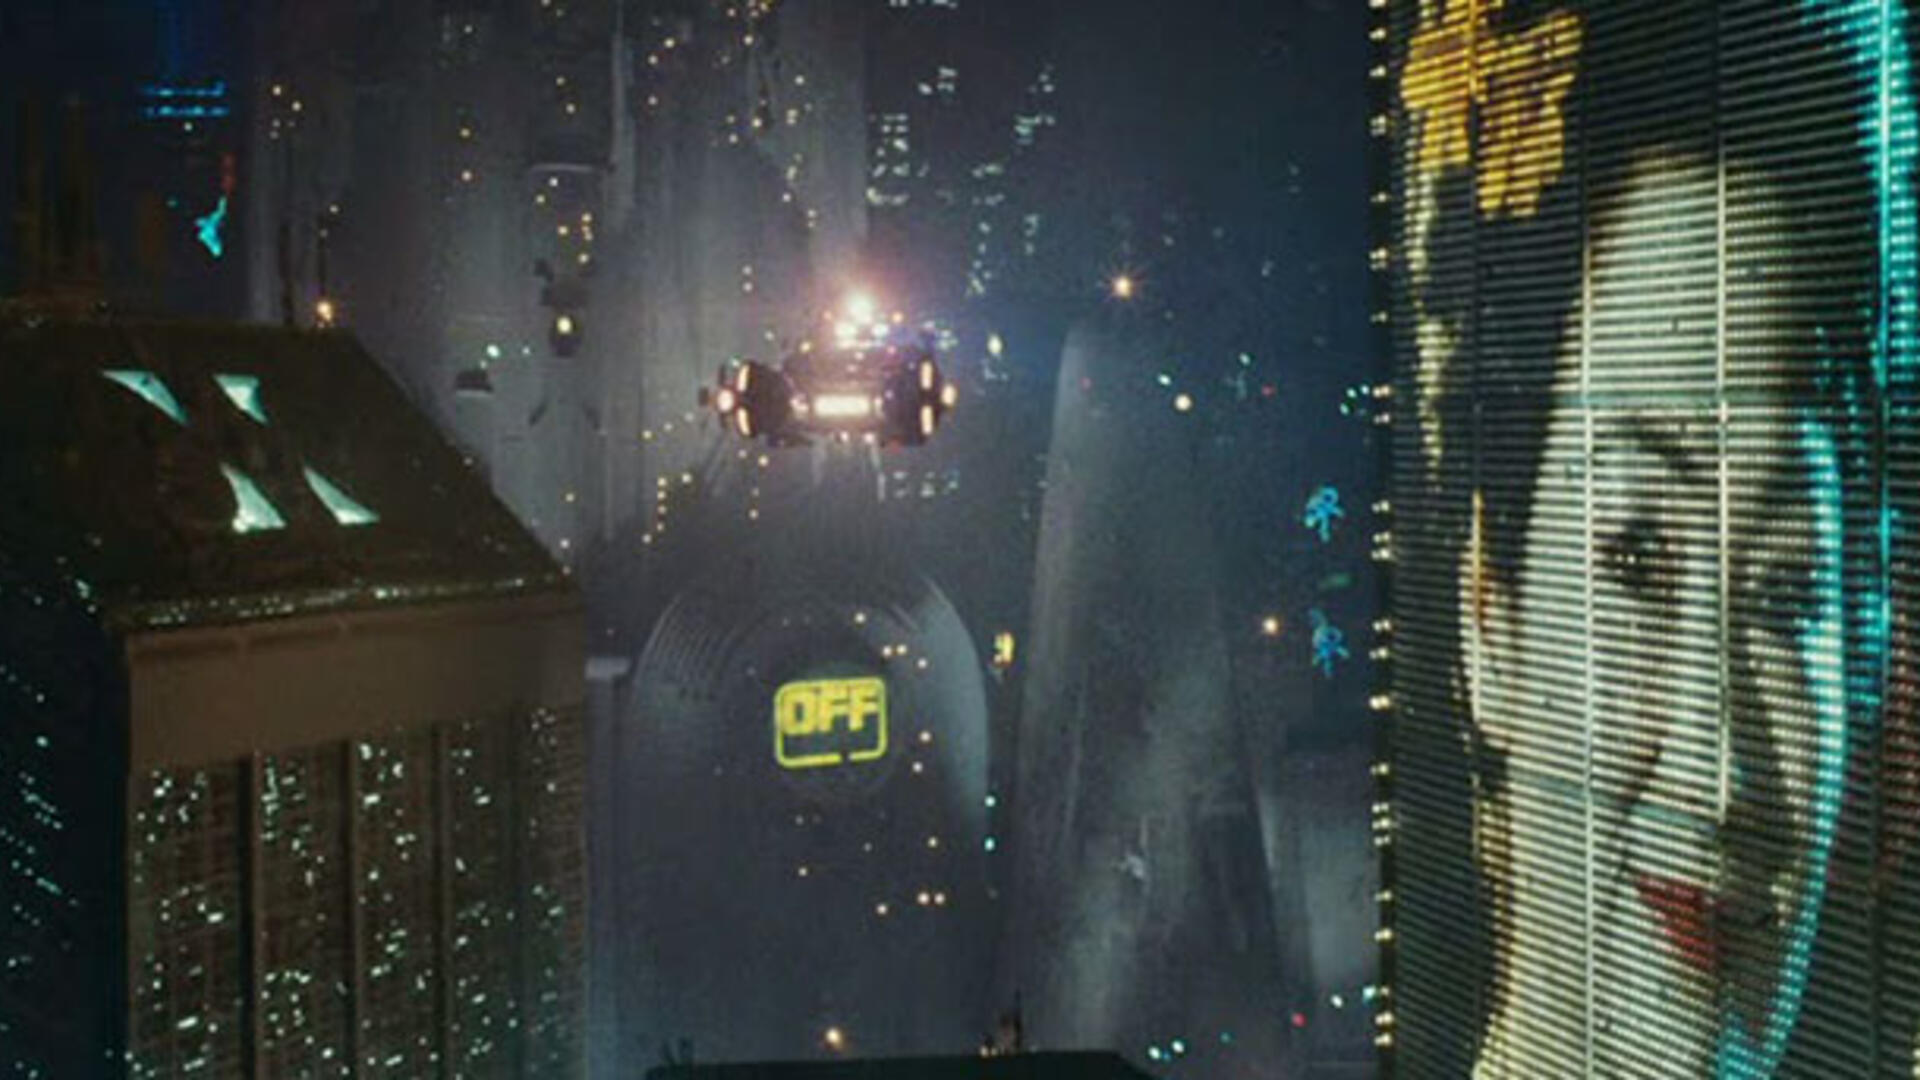 Ruminating on Blade Runner, One of Gaming's Greatest Influences